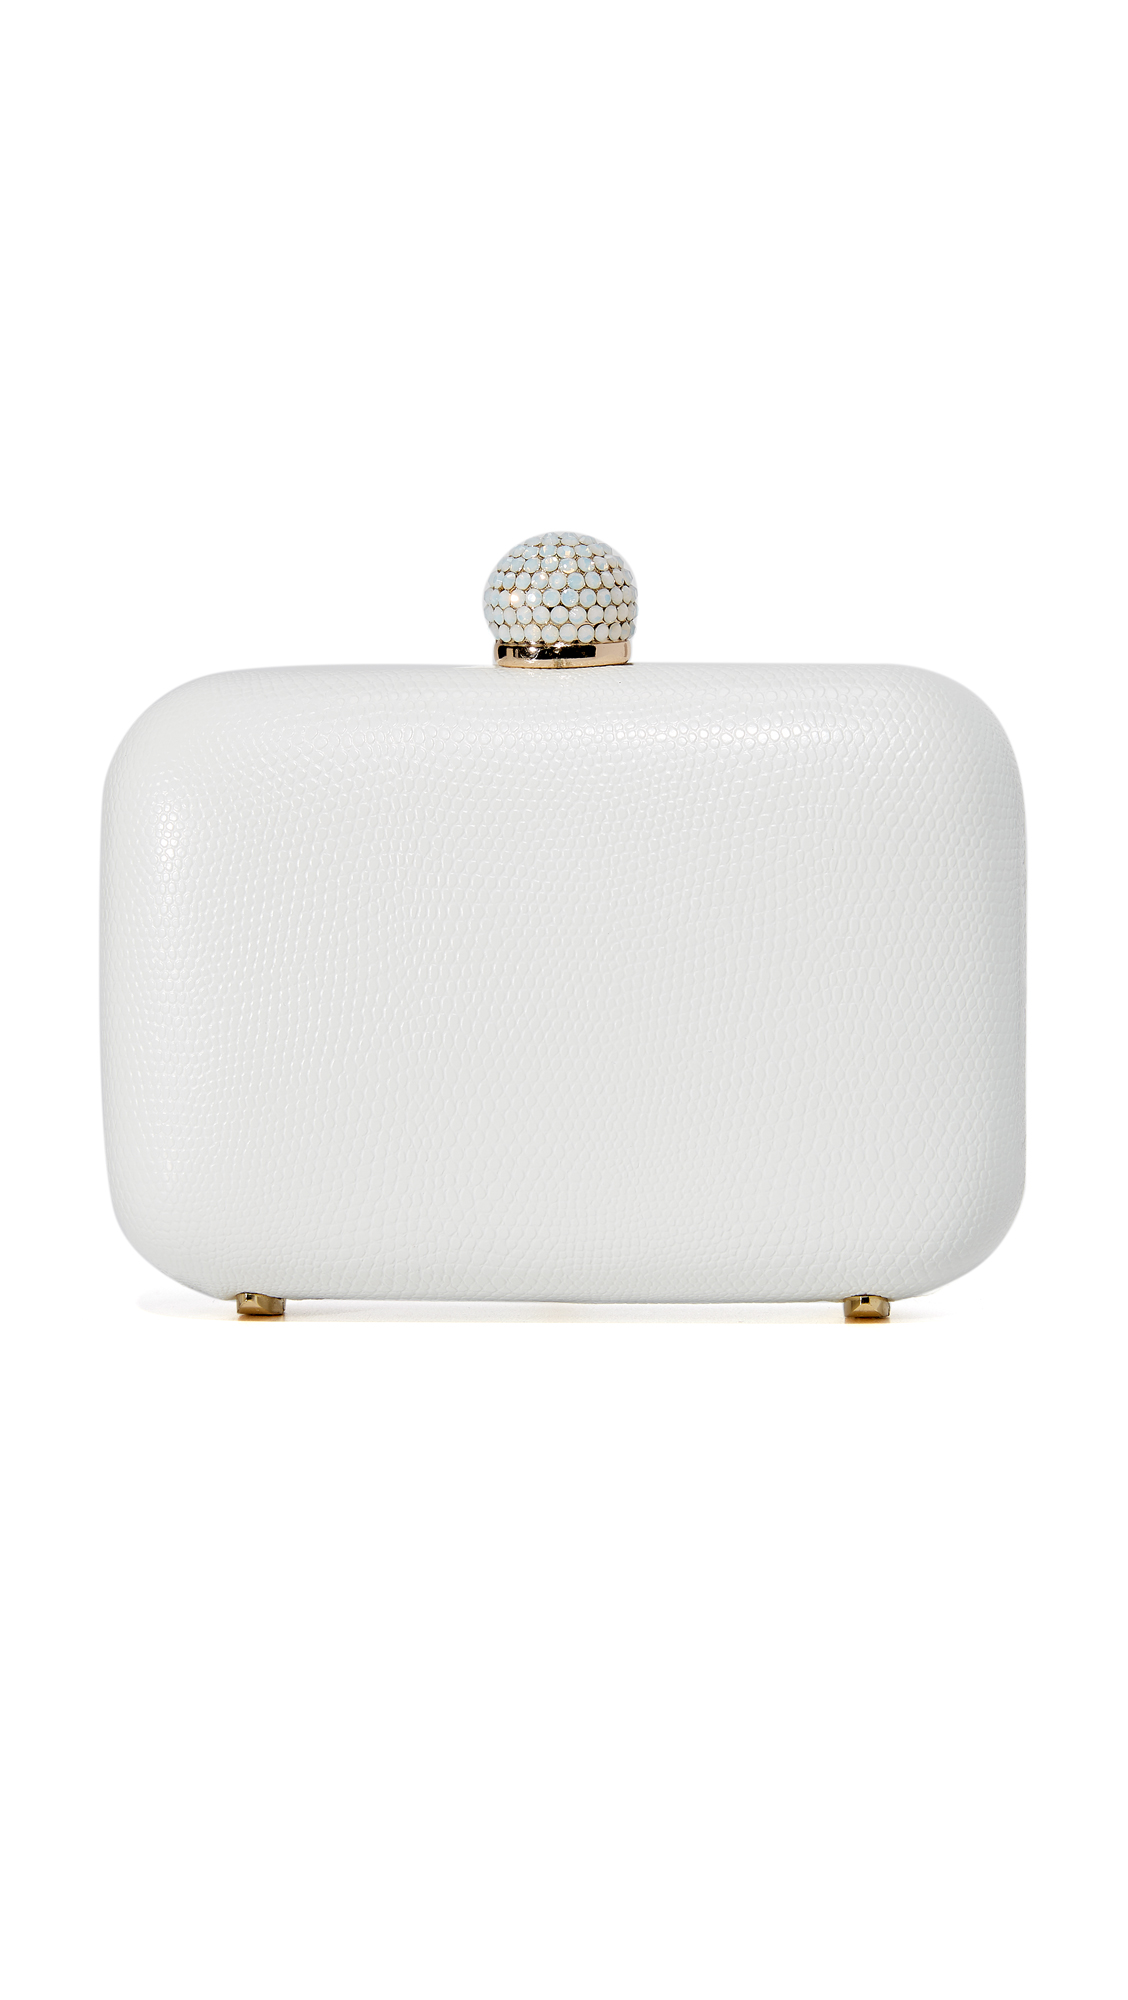 Inge Christopher Fiona Leather Clutch - Pearl